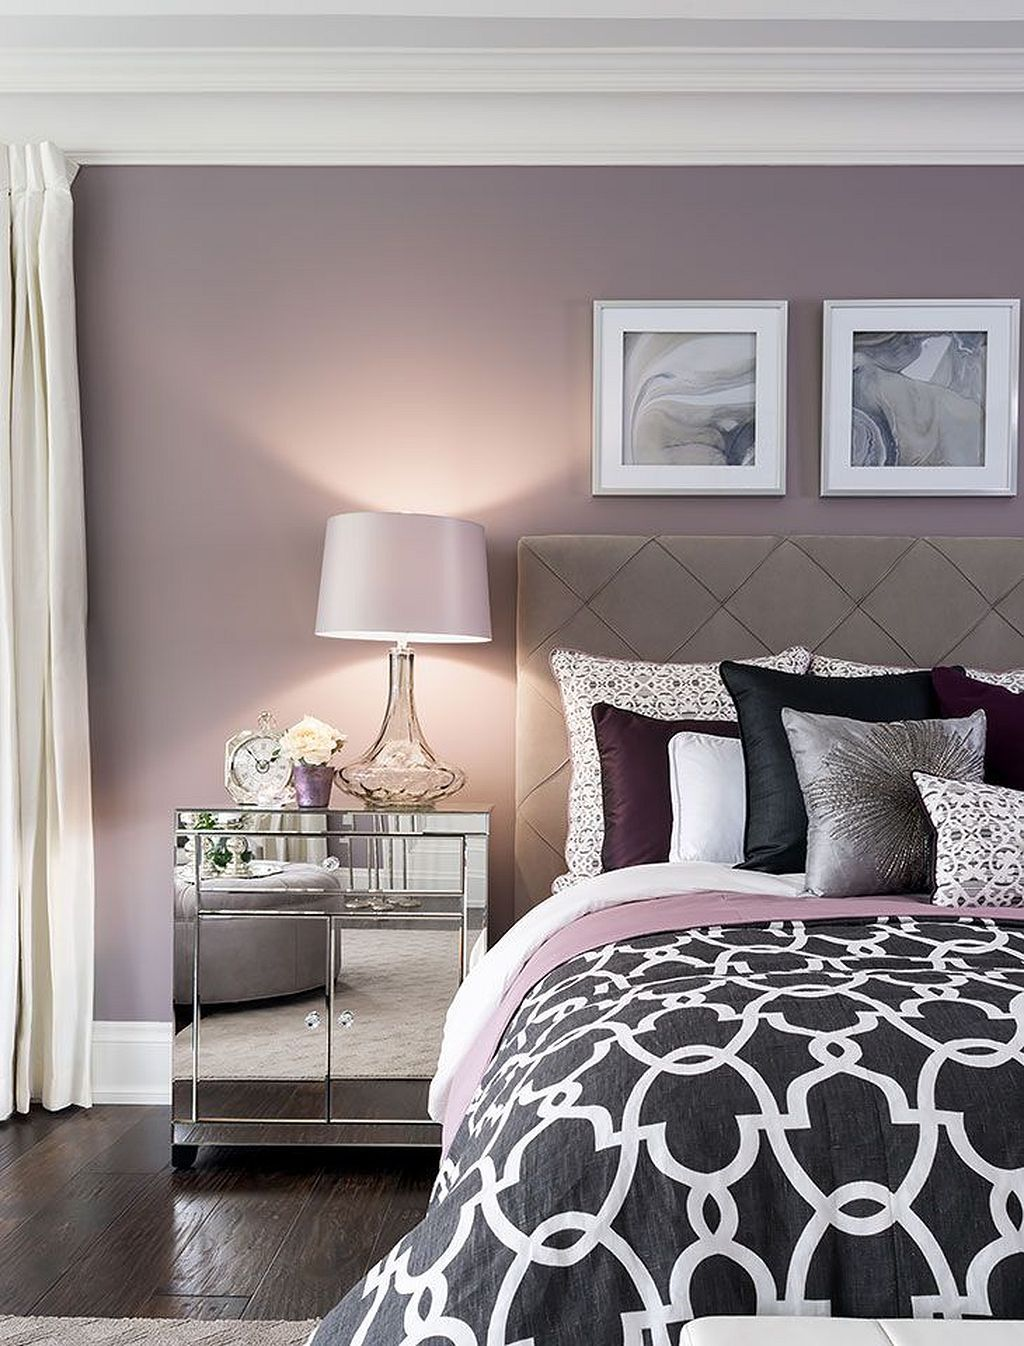 Couple Bedroom Design: 32 Amazing Bedroom Decorating Ideas For Couples